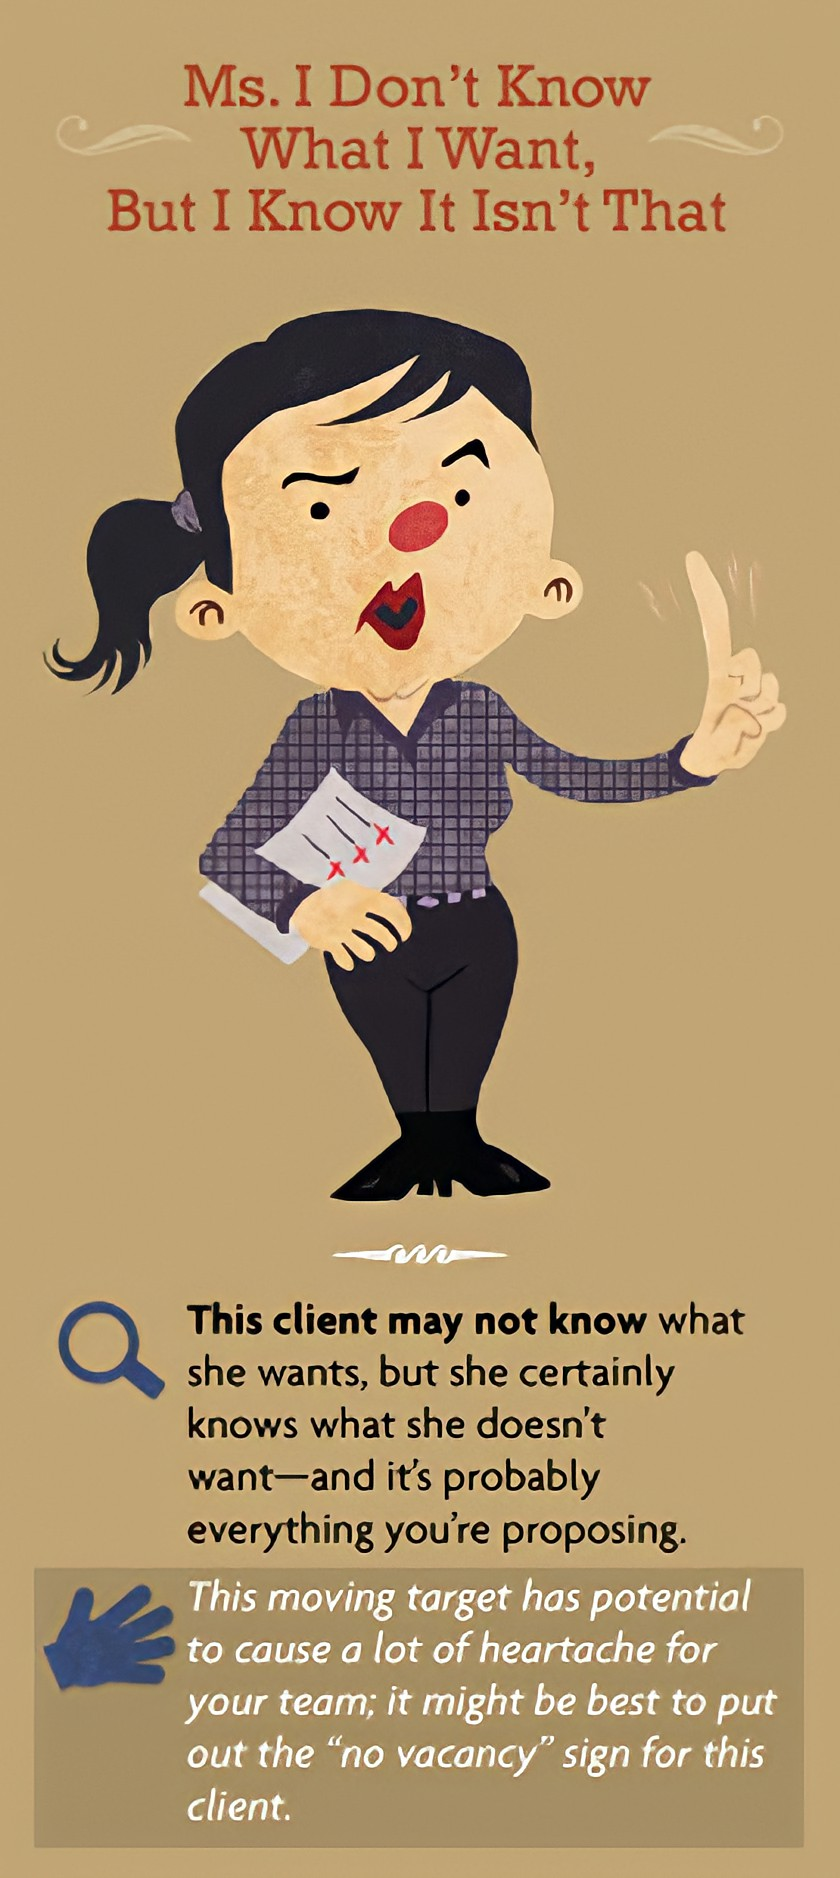 Types of difficult clients - Mrs. I Don't Know What I Want But I Know It Isn't That